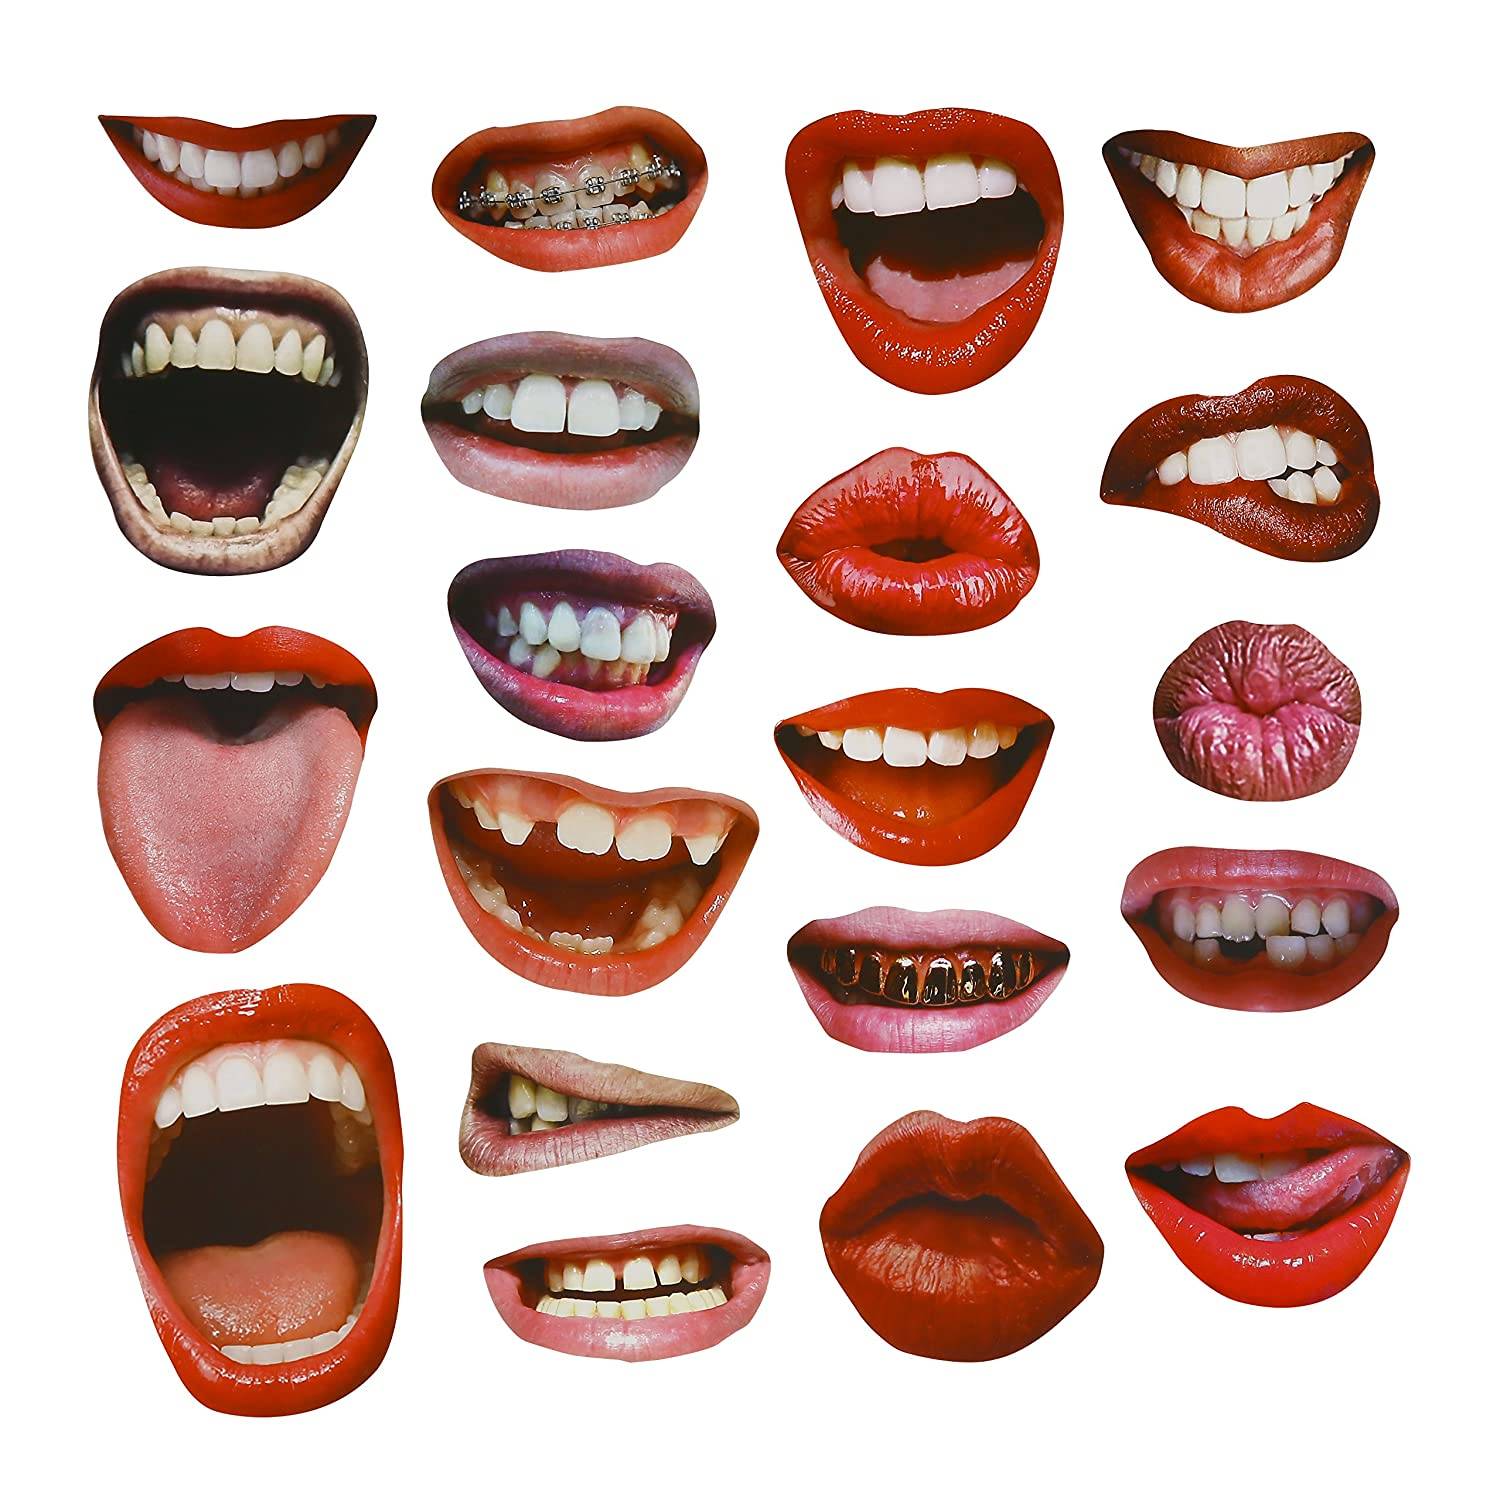 20PCS Funny Sexy Lips Mouth Photo Booth Props for Wedding Party Reunions  Birthdays: Amazon.co.uk: Toys & Games